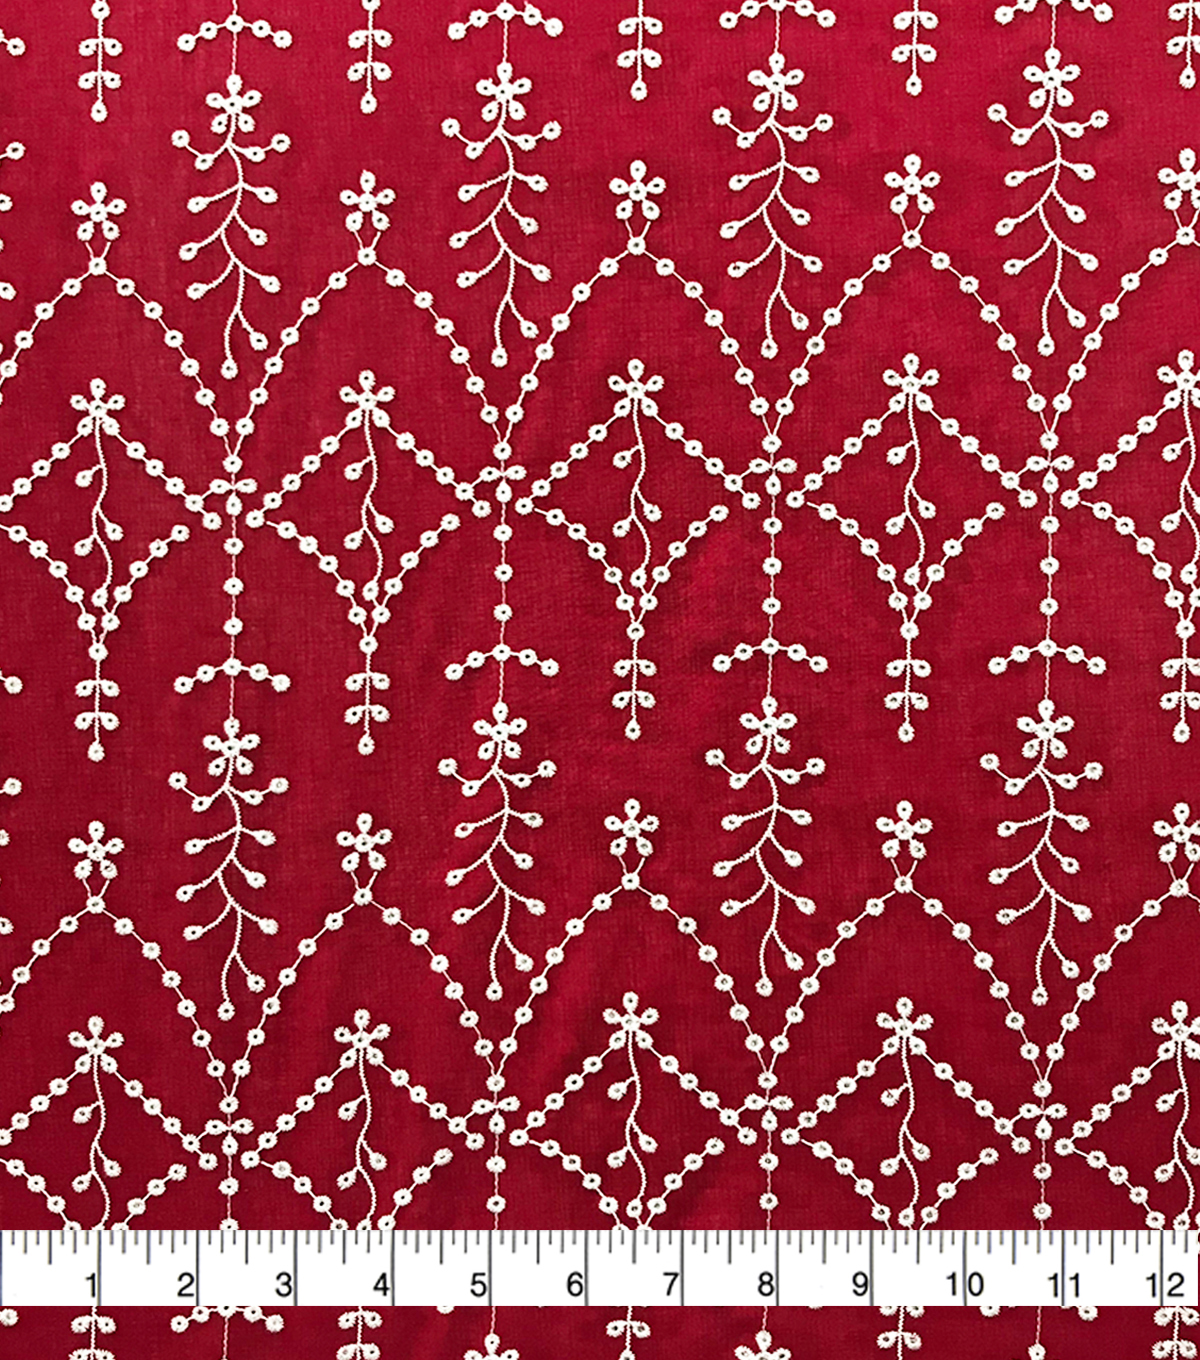 Specialty Cotton 2-Color Embroidered Scallop Cotton Fabric-Red White